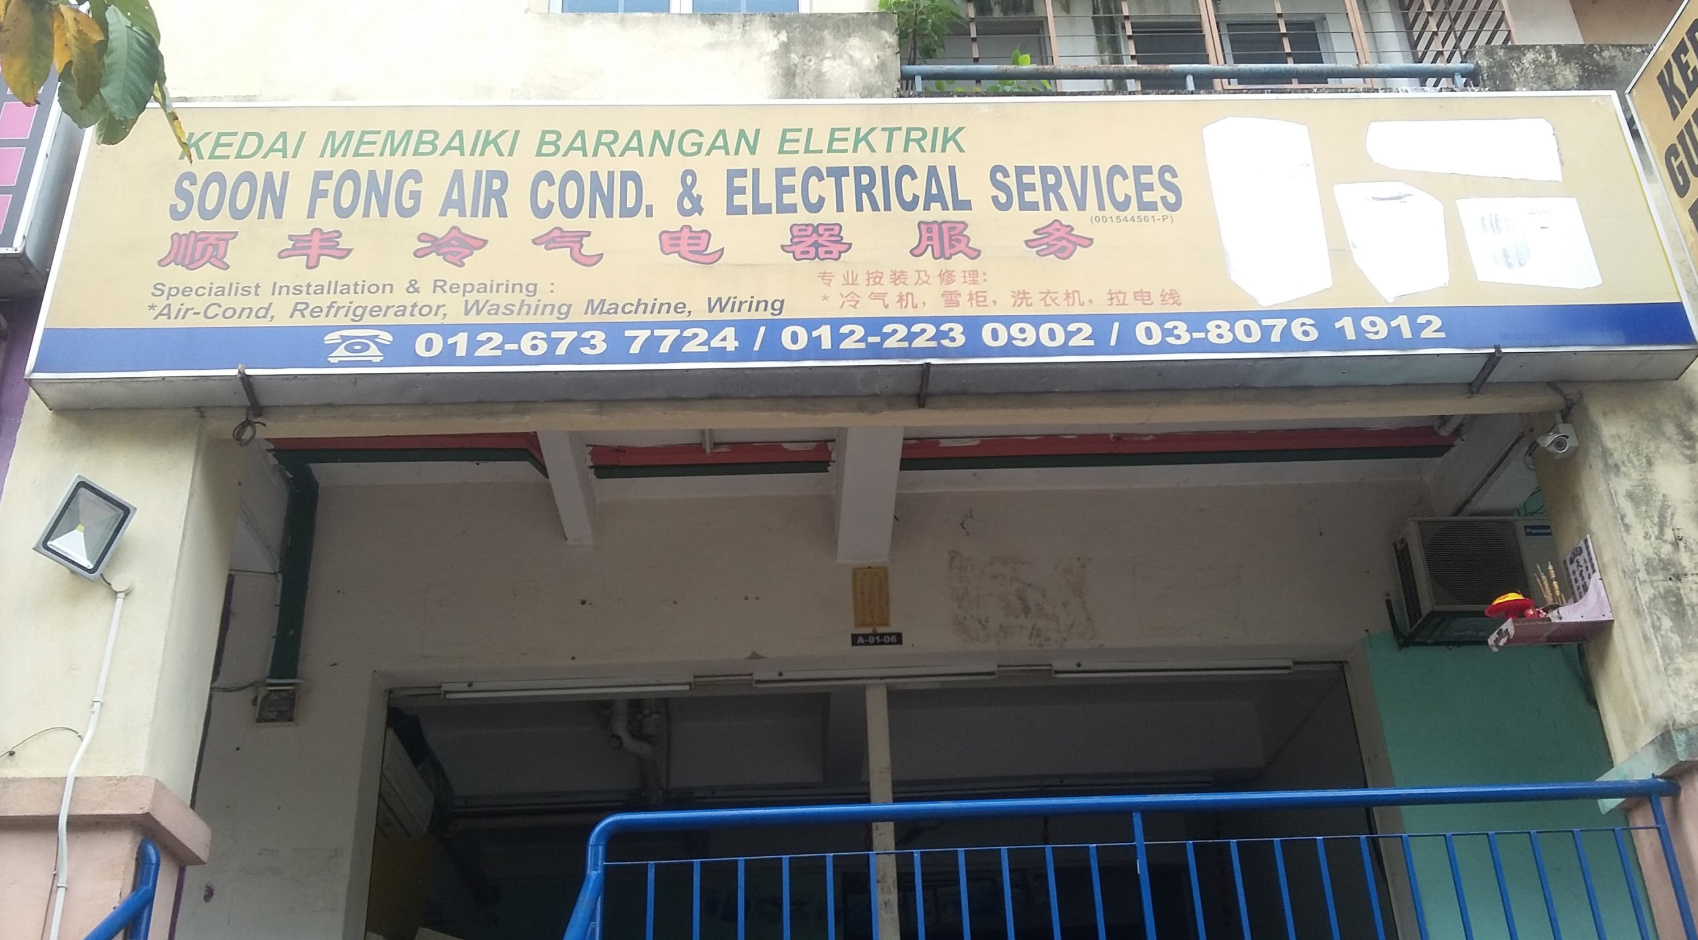 Soon Fong Air Cond. & Electrical Services